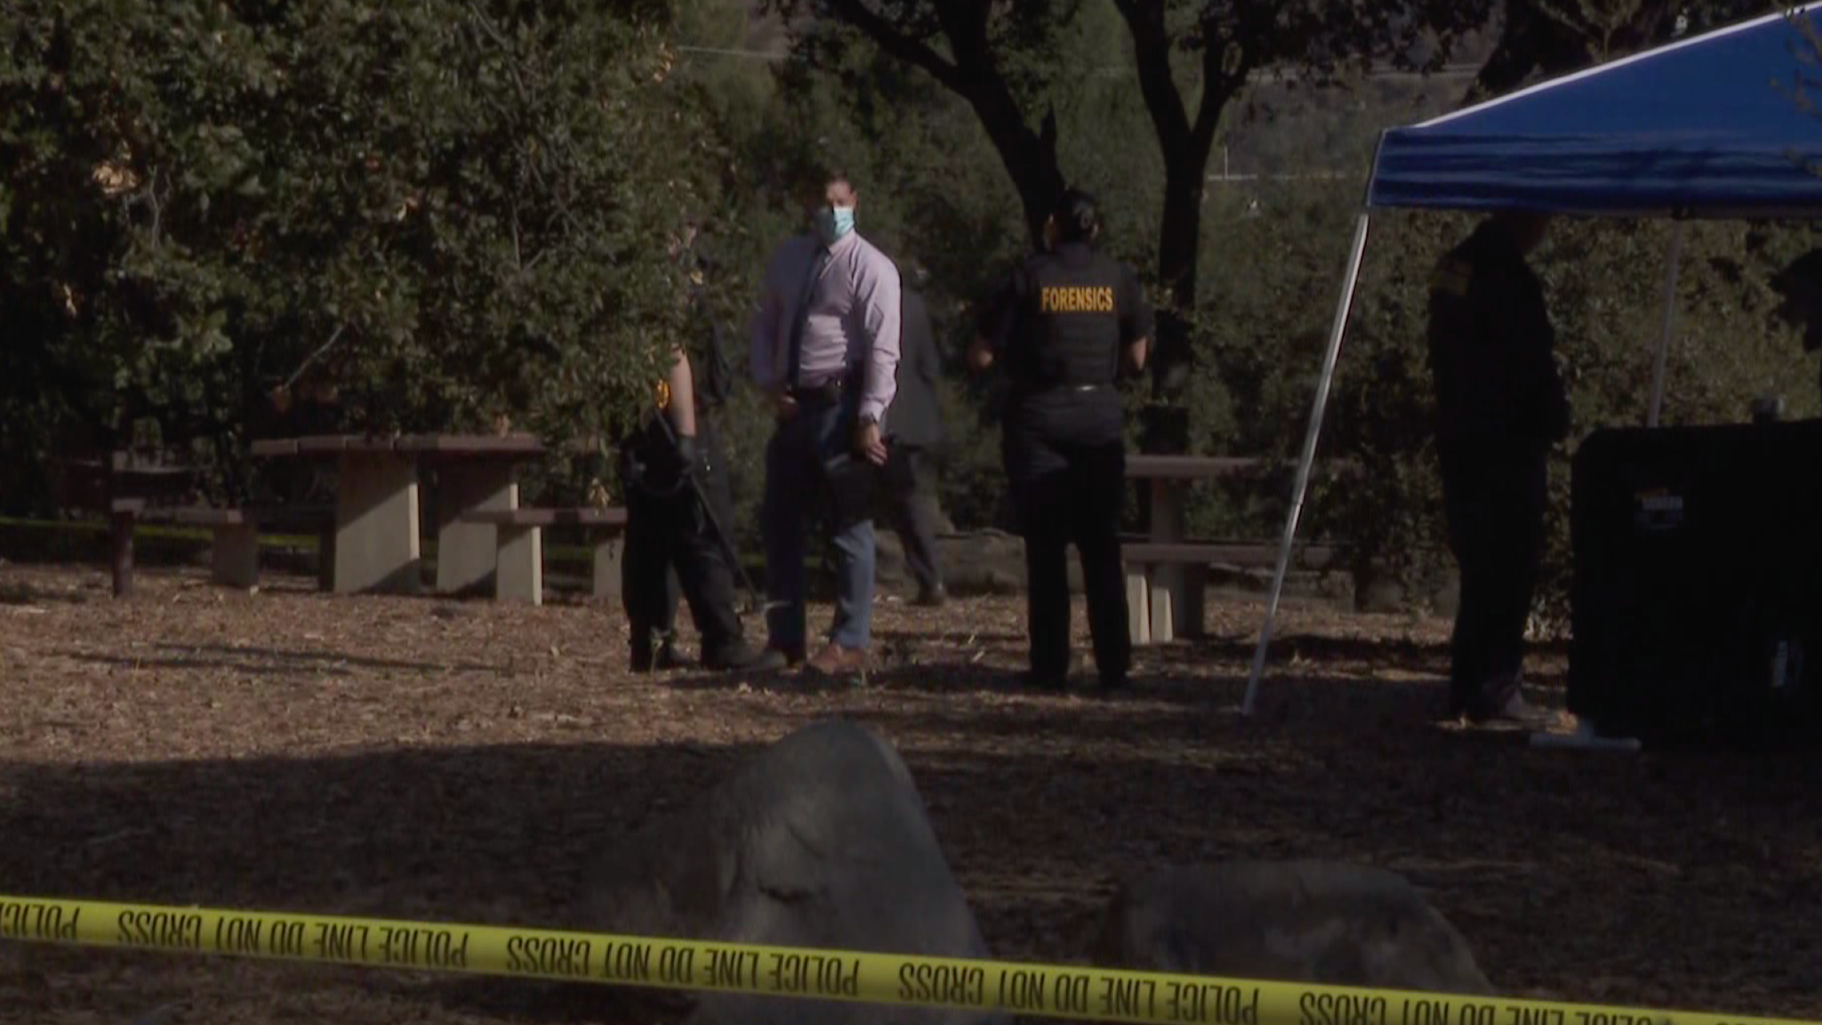 Authorities respond to investigate after a woman was found slain at Hahamongna Watershed Park in Pasadena on Nov. 24, 2020. (KTLA)